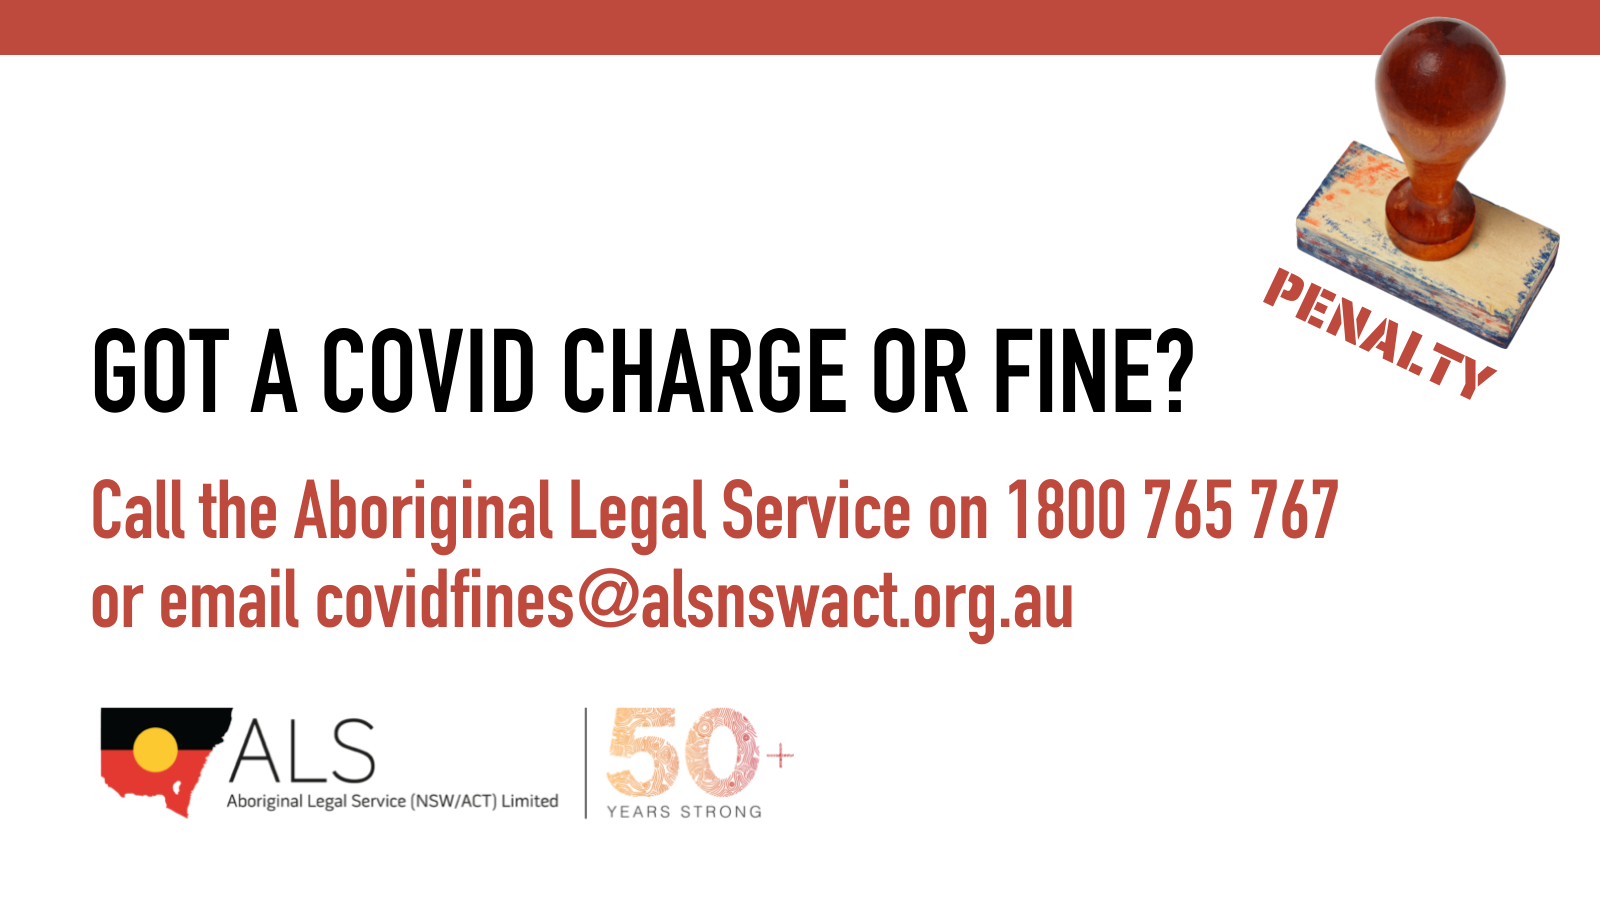 ALS support for COVID fines and charges